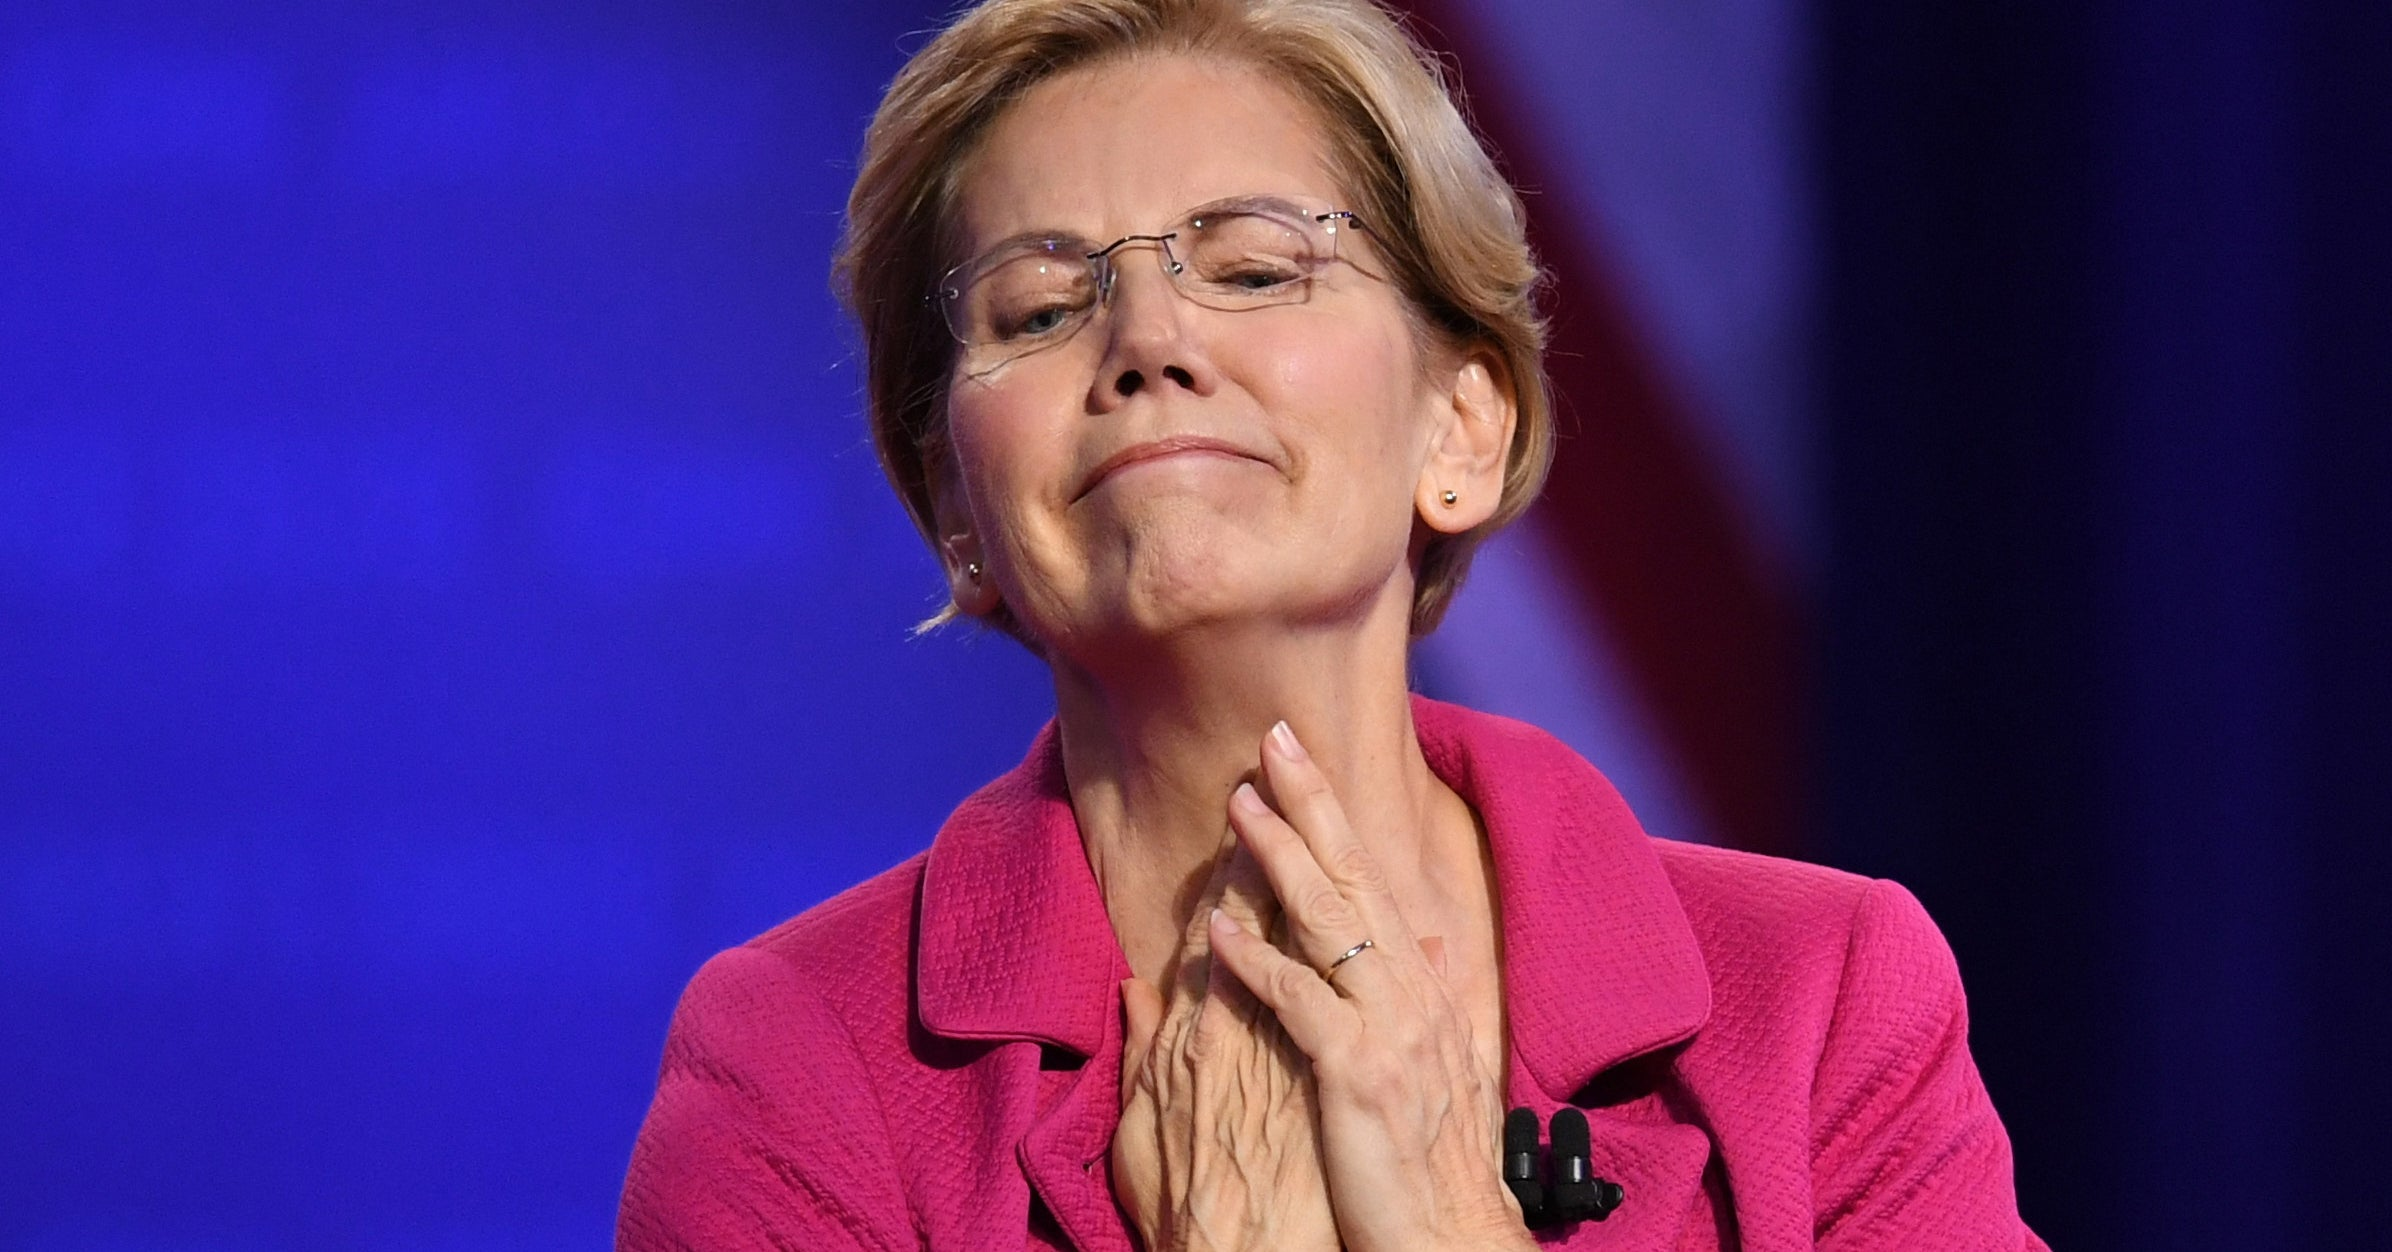 Elizabeth Warren's Response To A Question About Same-Sex Marriage Has Won Her A Ton Of Praise